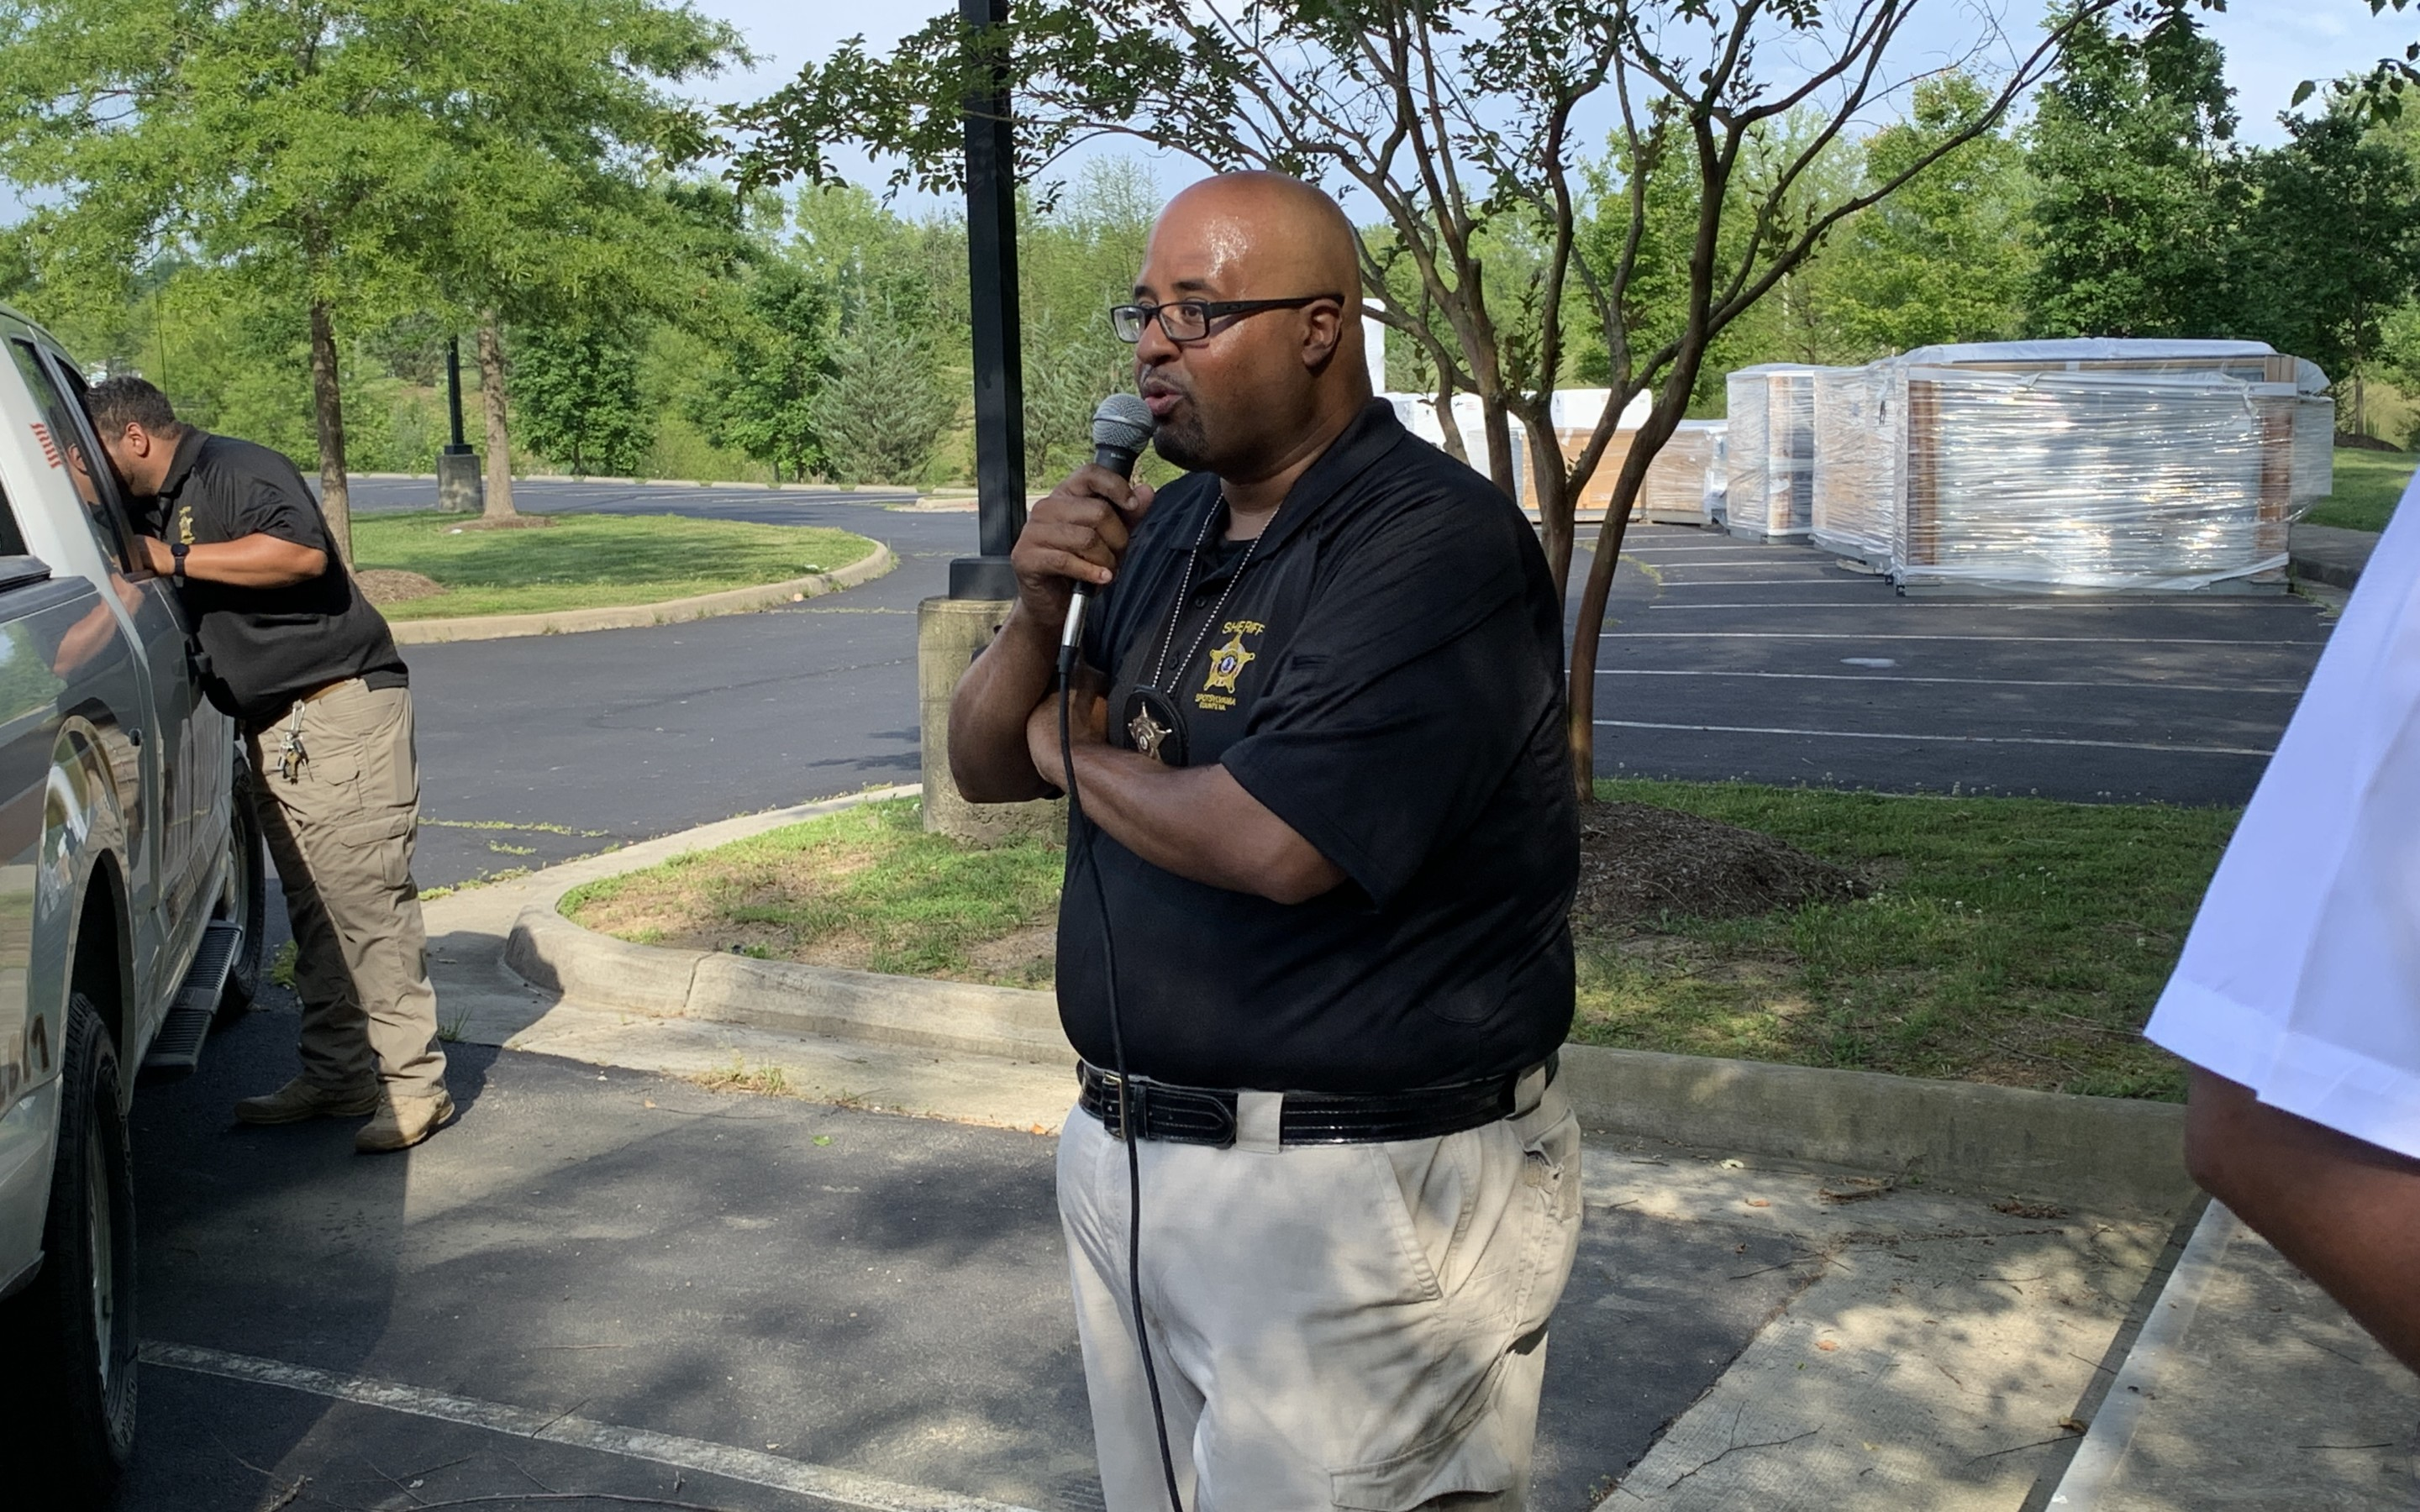 """1st Sgt Shaun Jones: """"In order to make a difference we need to do it peacefully."""""""